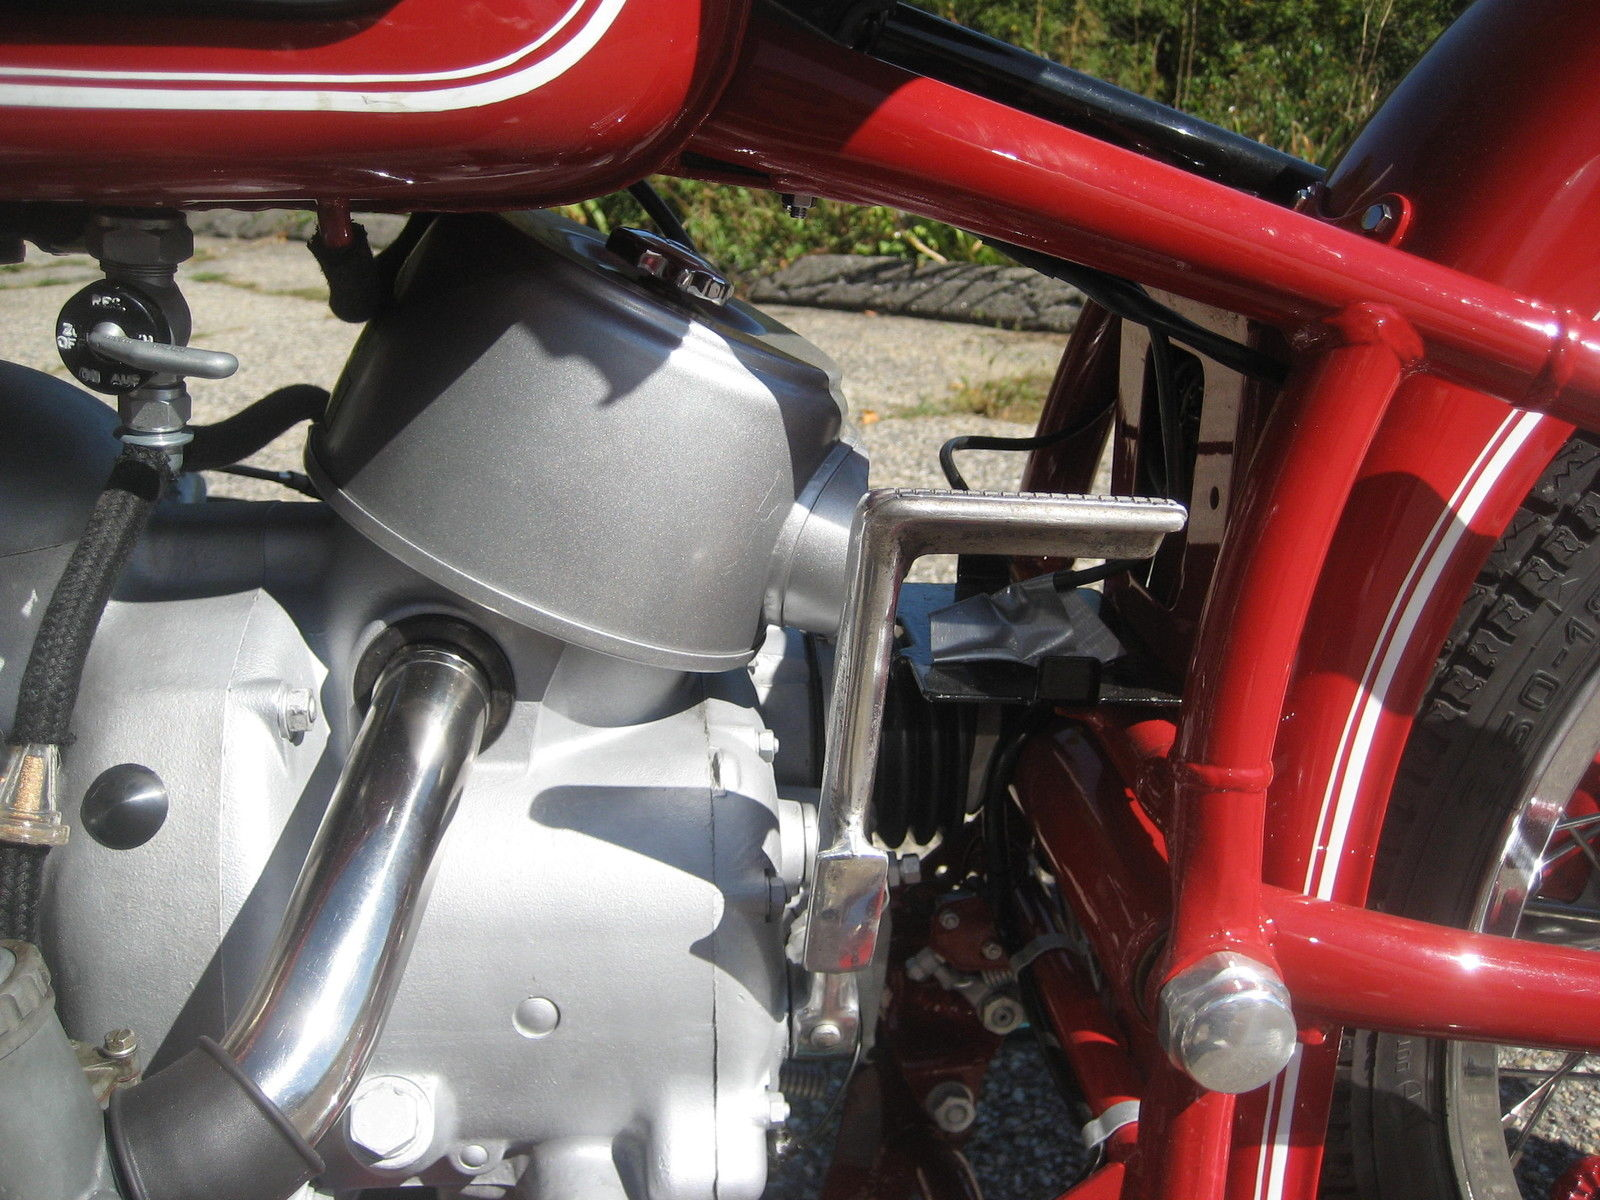 BMW R60 - 1969 - Kick Start, Frame, Inlet and Air Filter.